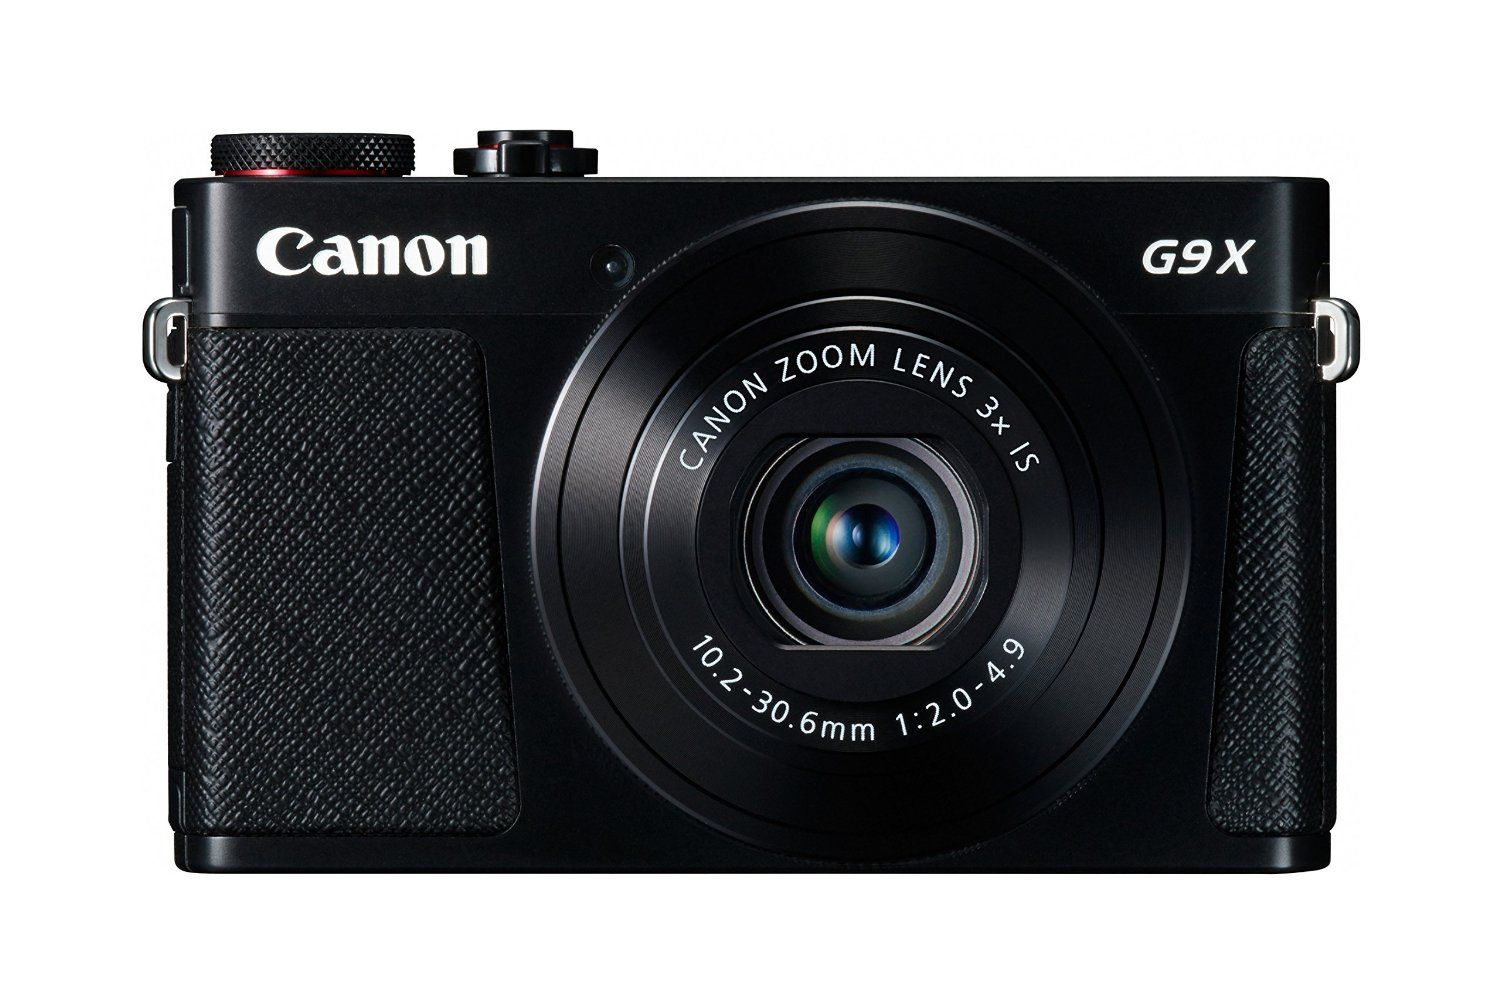 Amazon.com : Canon PowerShot G9 X Digital Camera with 3x Optical Zoom, Built-in Wi-Fi and 3 inch LCD (Black) : Camera & Photo